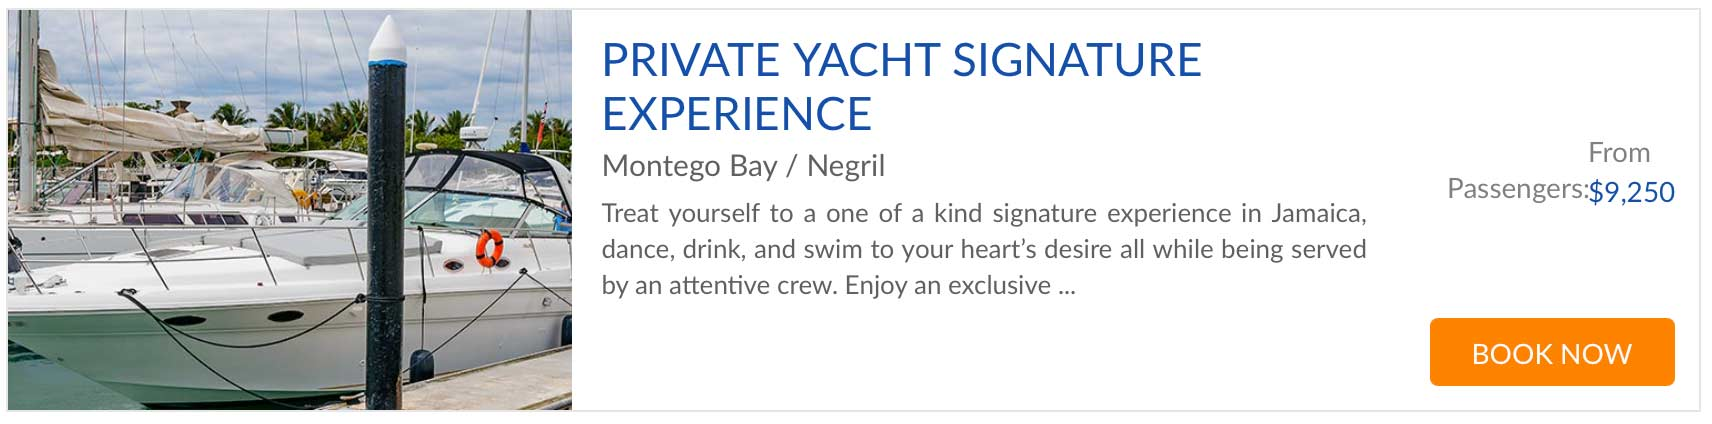 yacht tour signature experience